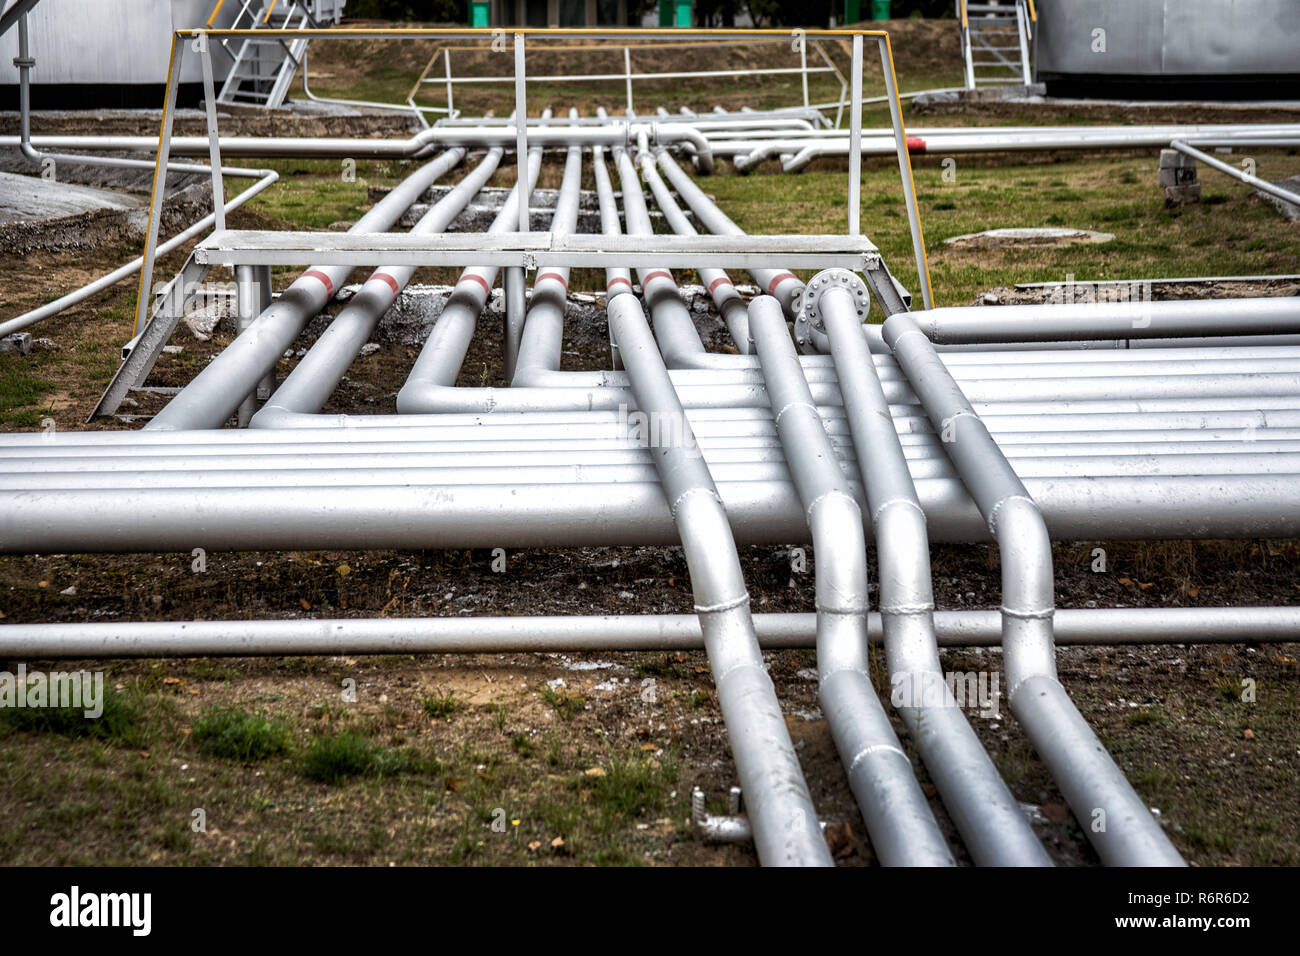 pipes and valves at oil refinery - Stock Image